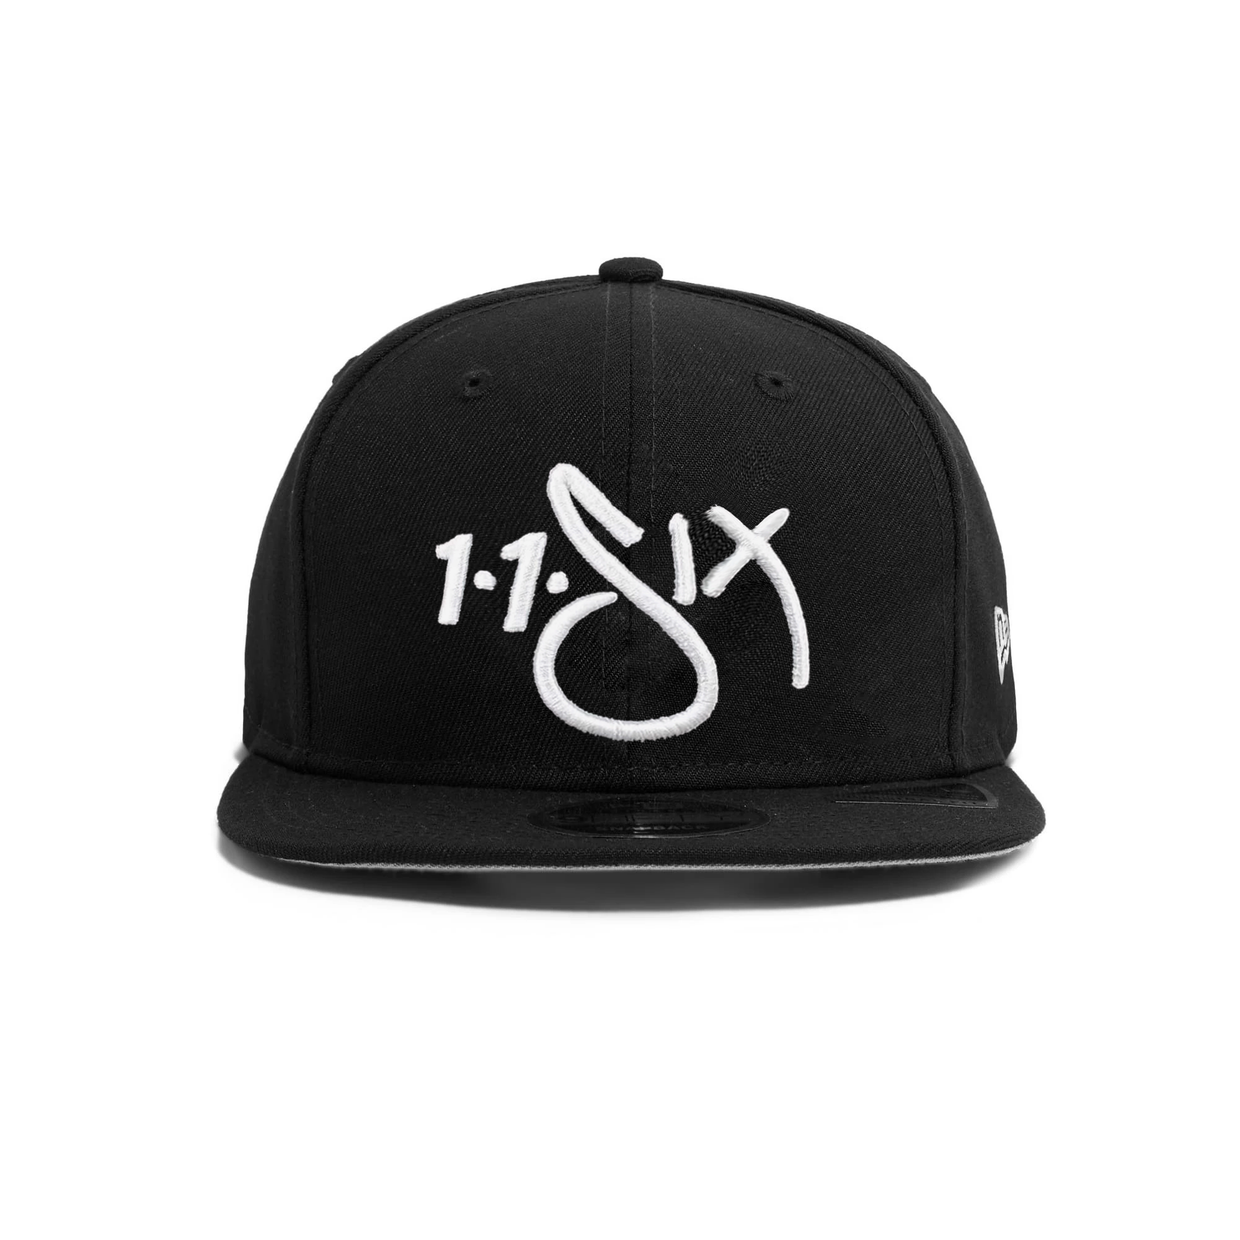 116 x New Era 'Red Label' 9Fifty Snapback